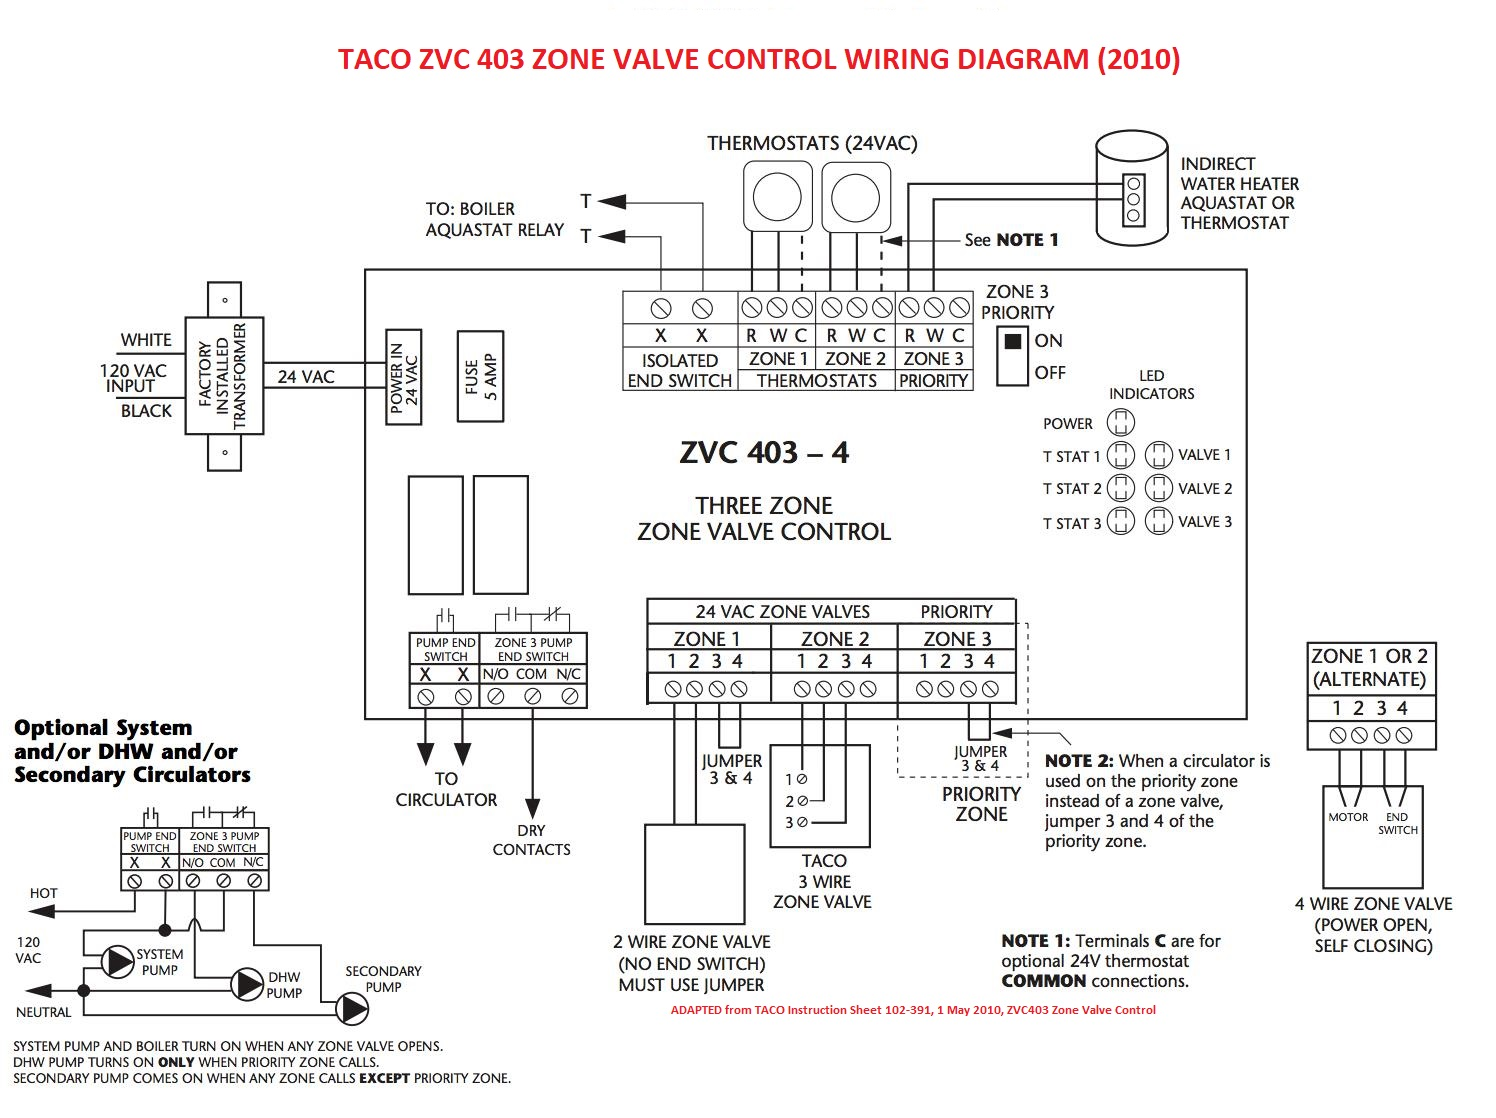 Taci ZVC493 wiring diagram - click to enlarge - at InspectApedia.com  Individual Hydronic Heating ...